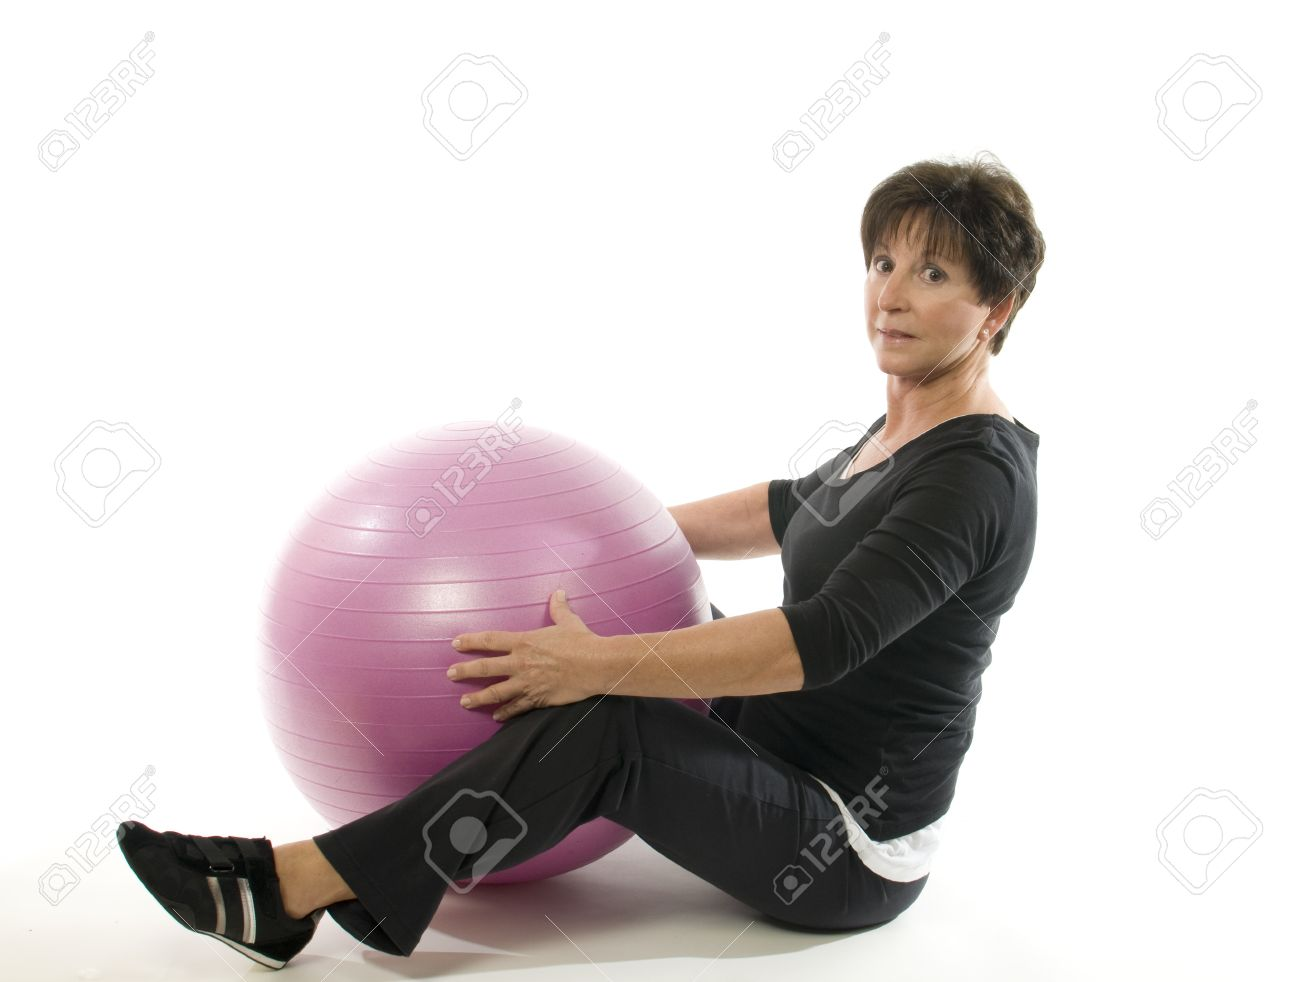 middle age senior woman fitness exercise with core training ball sit ups Stock Photo - 10679210